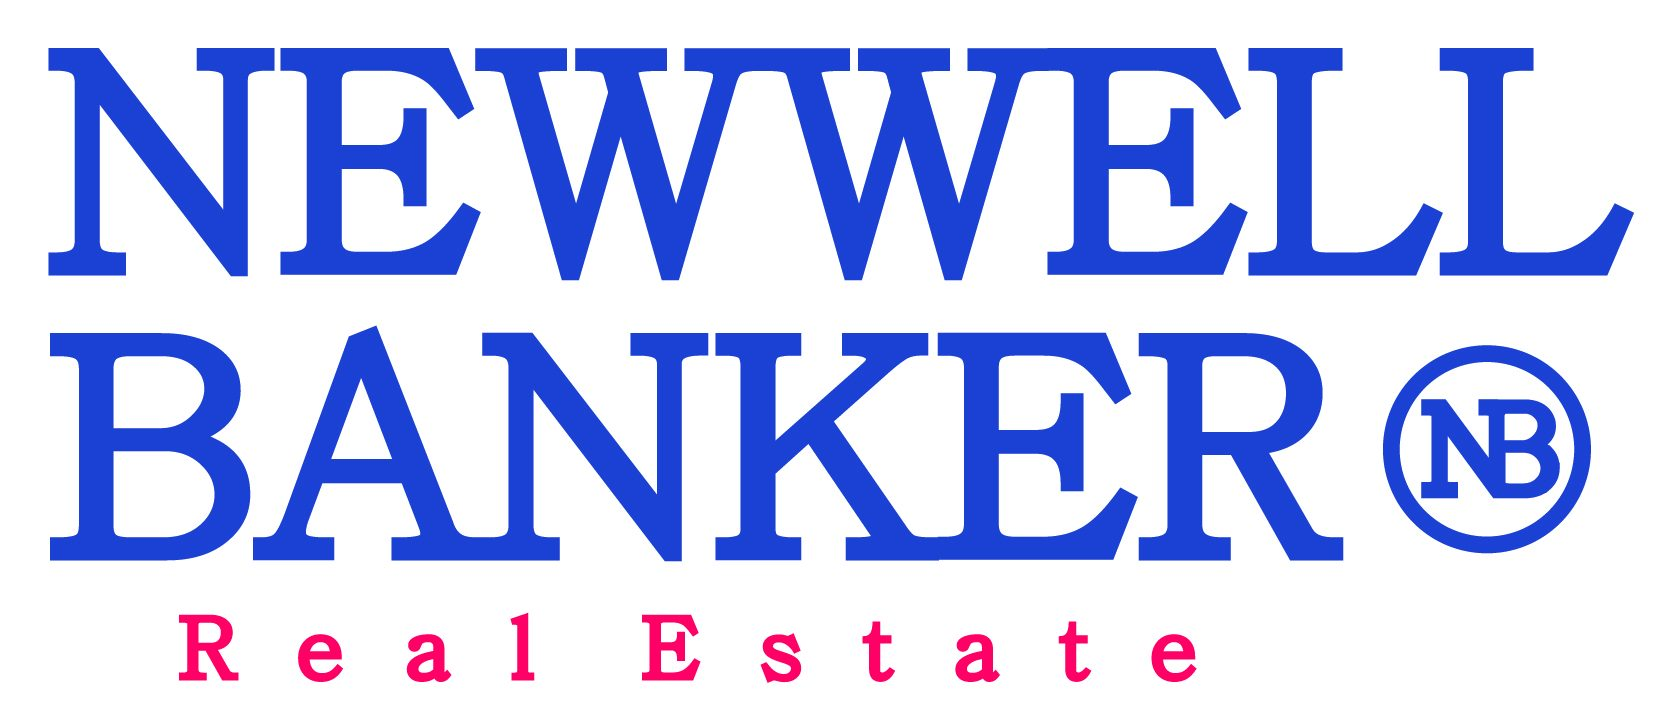 Newwell Banker Real Estate